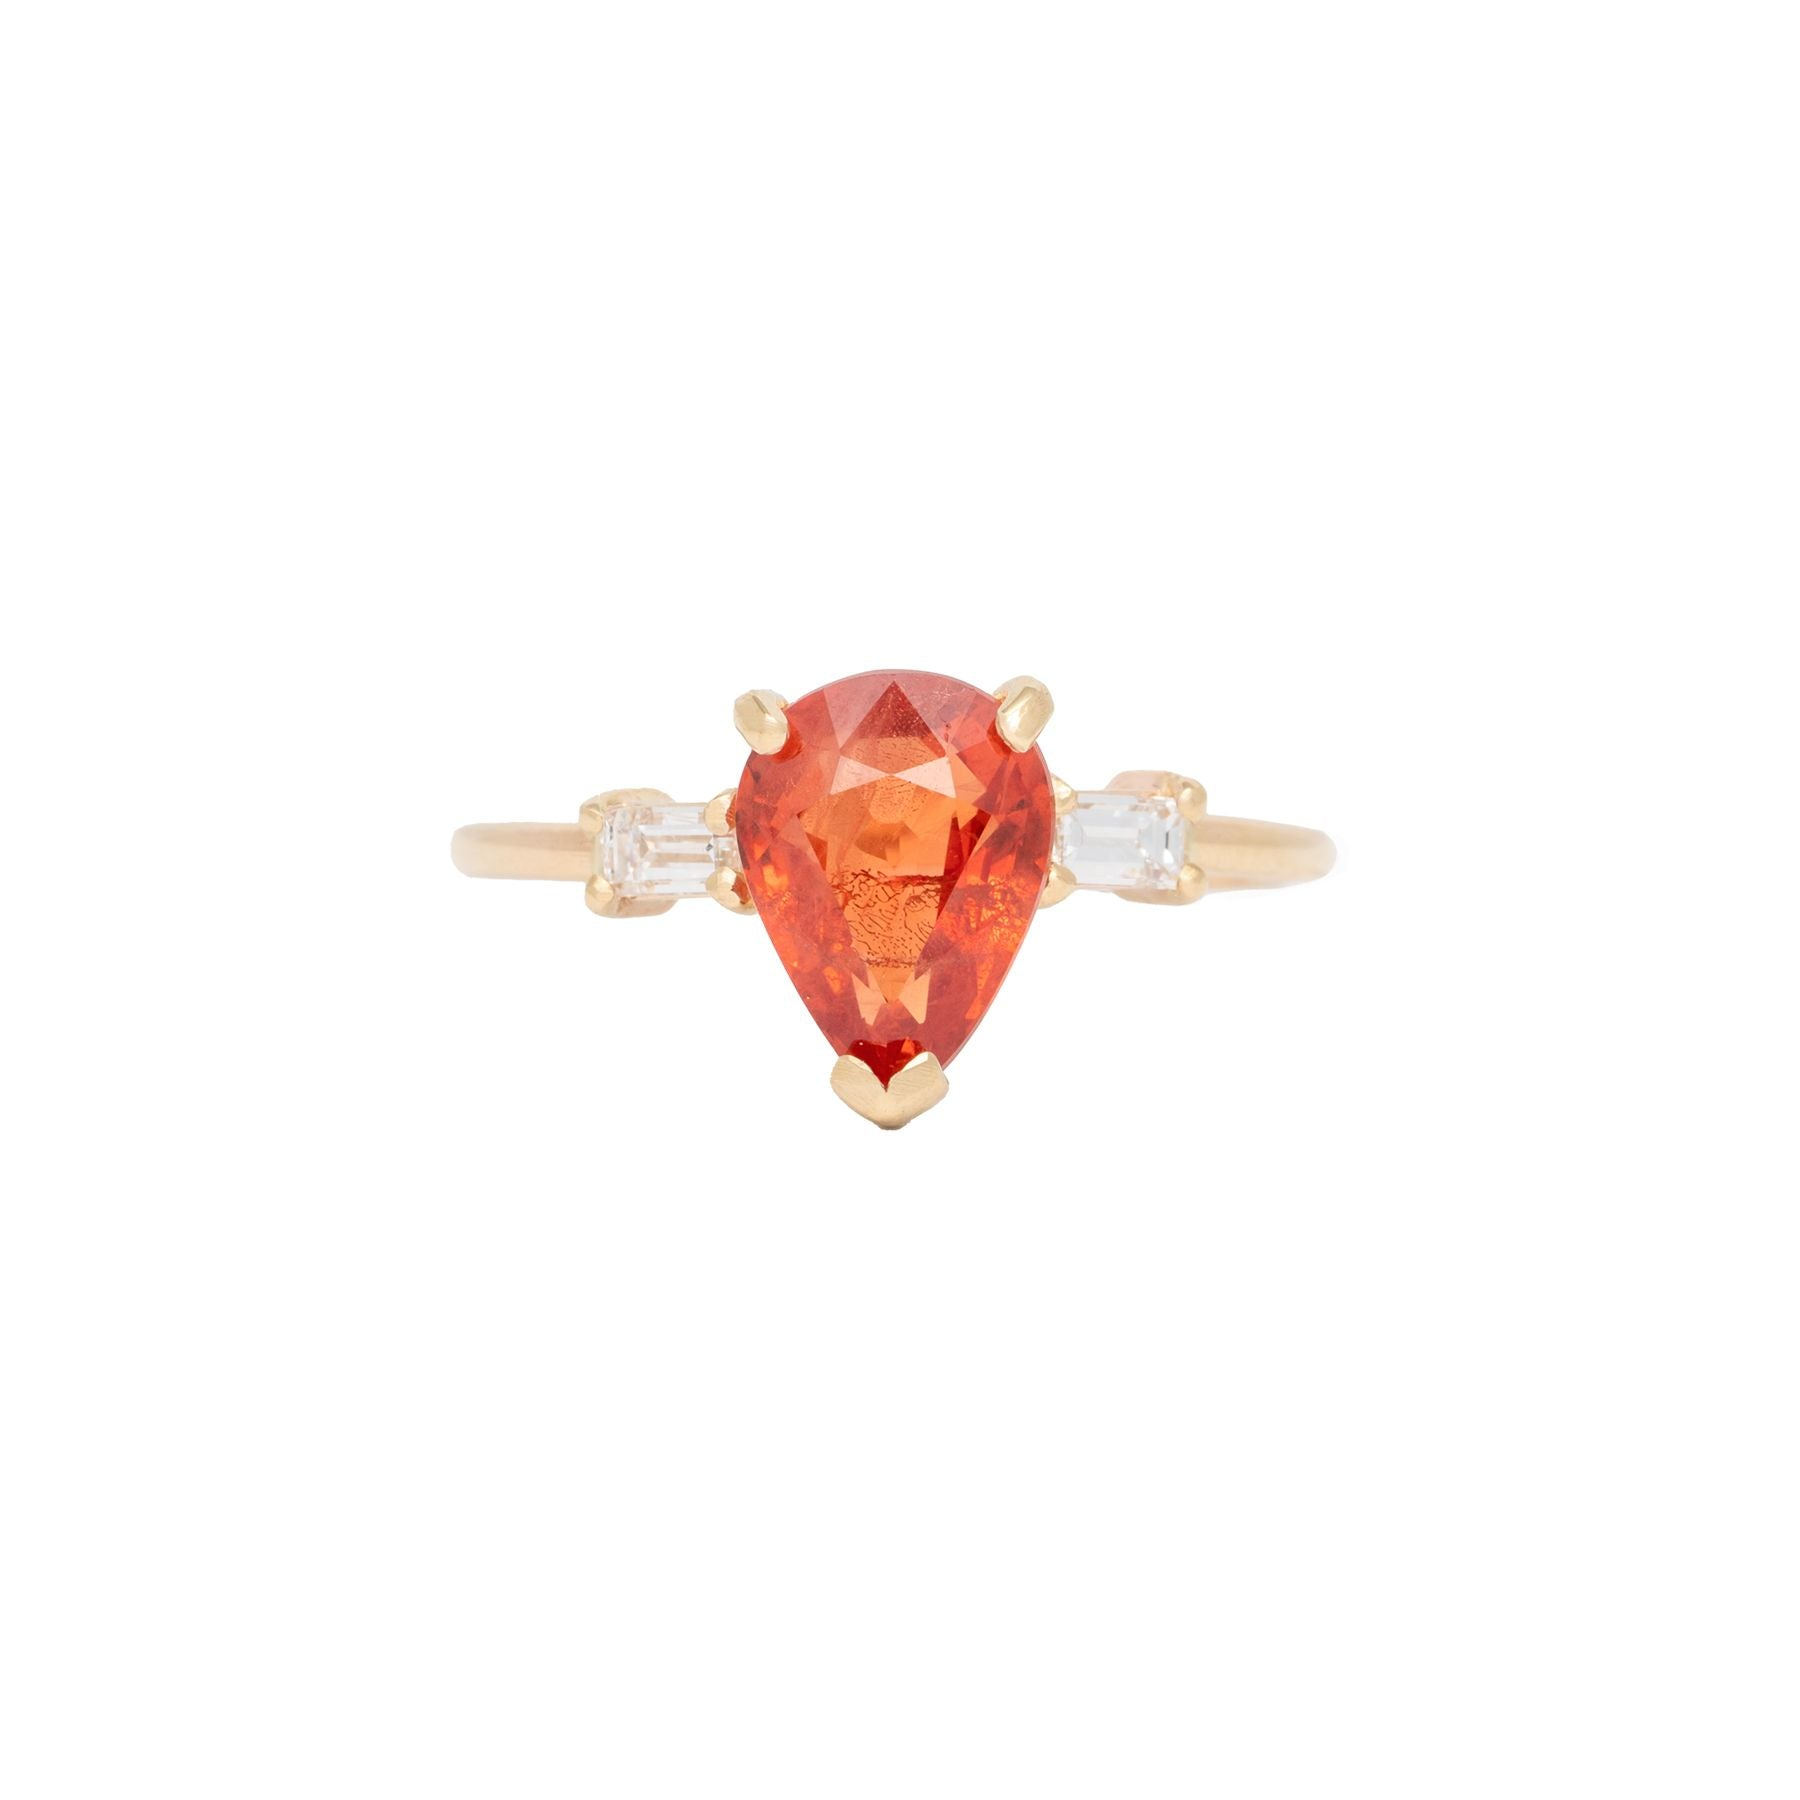 Orange Sapphire Pear 2 Baguette Diamond Ring